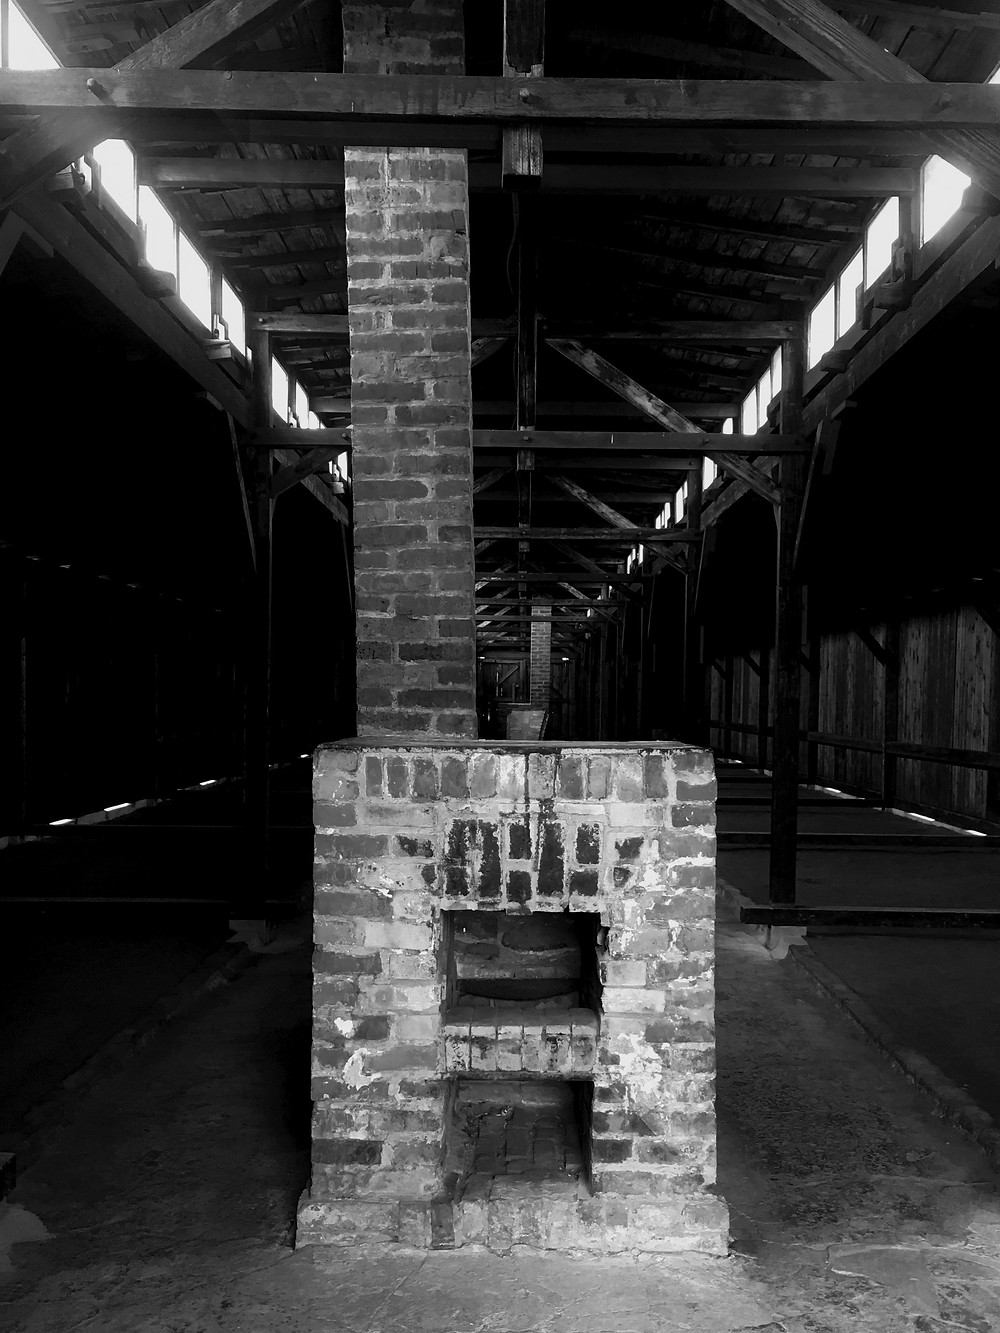 Dark black and white photography featuring a cubic fireplace with a chimney going through the roof of a wooden barrack at Auschwitz II